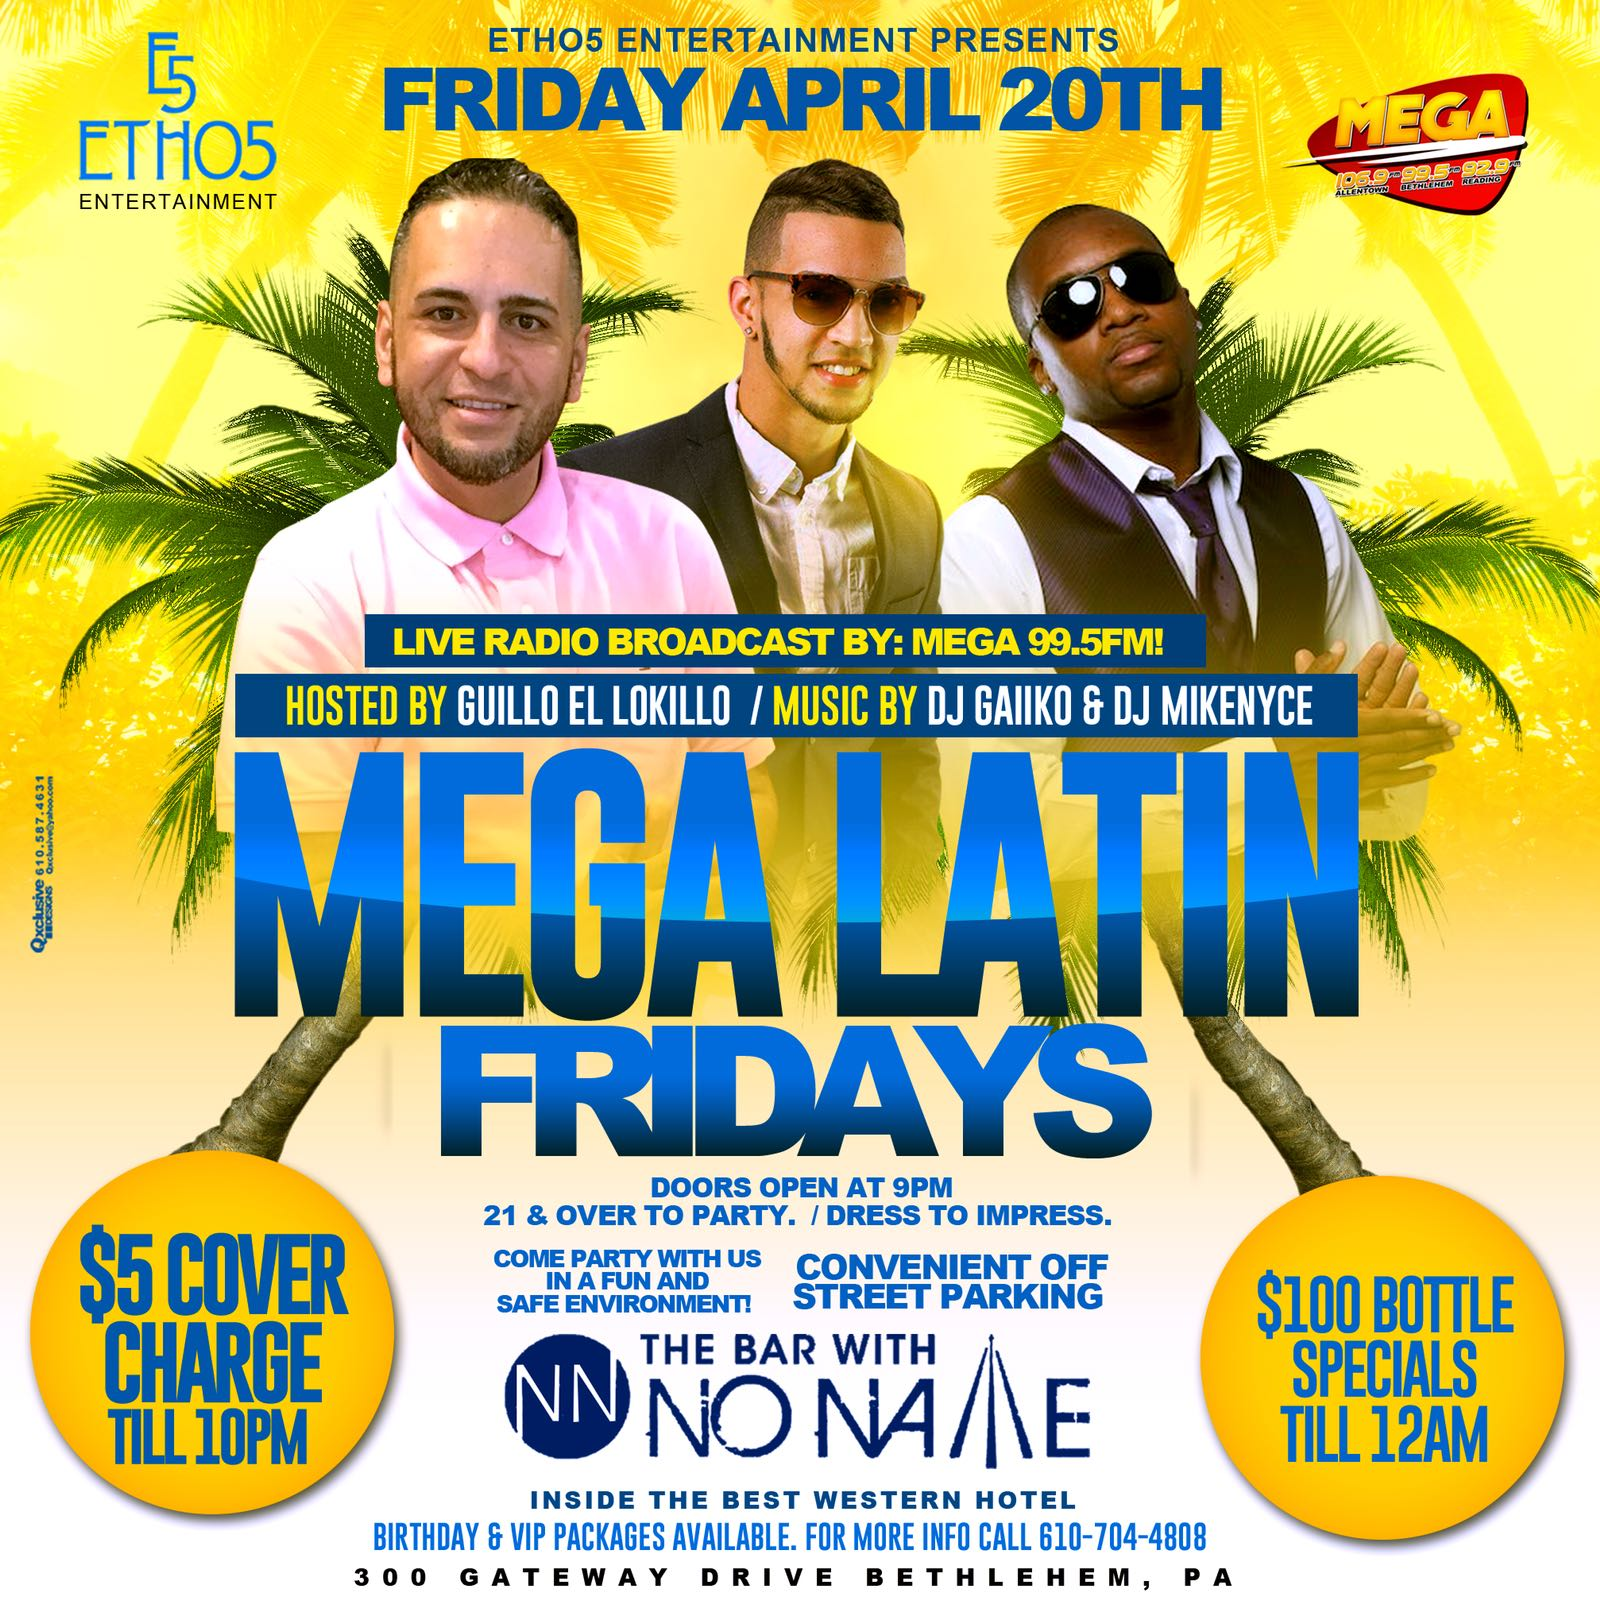 MEGA Latin Fridays at the Bar with No Name